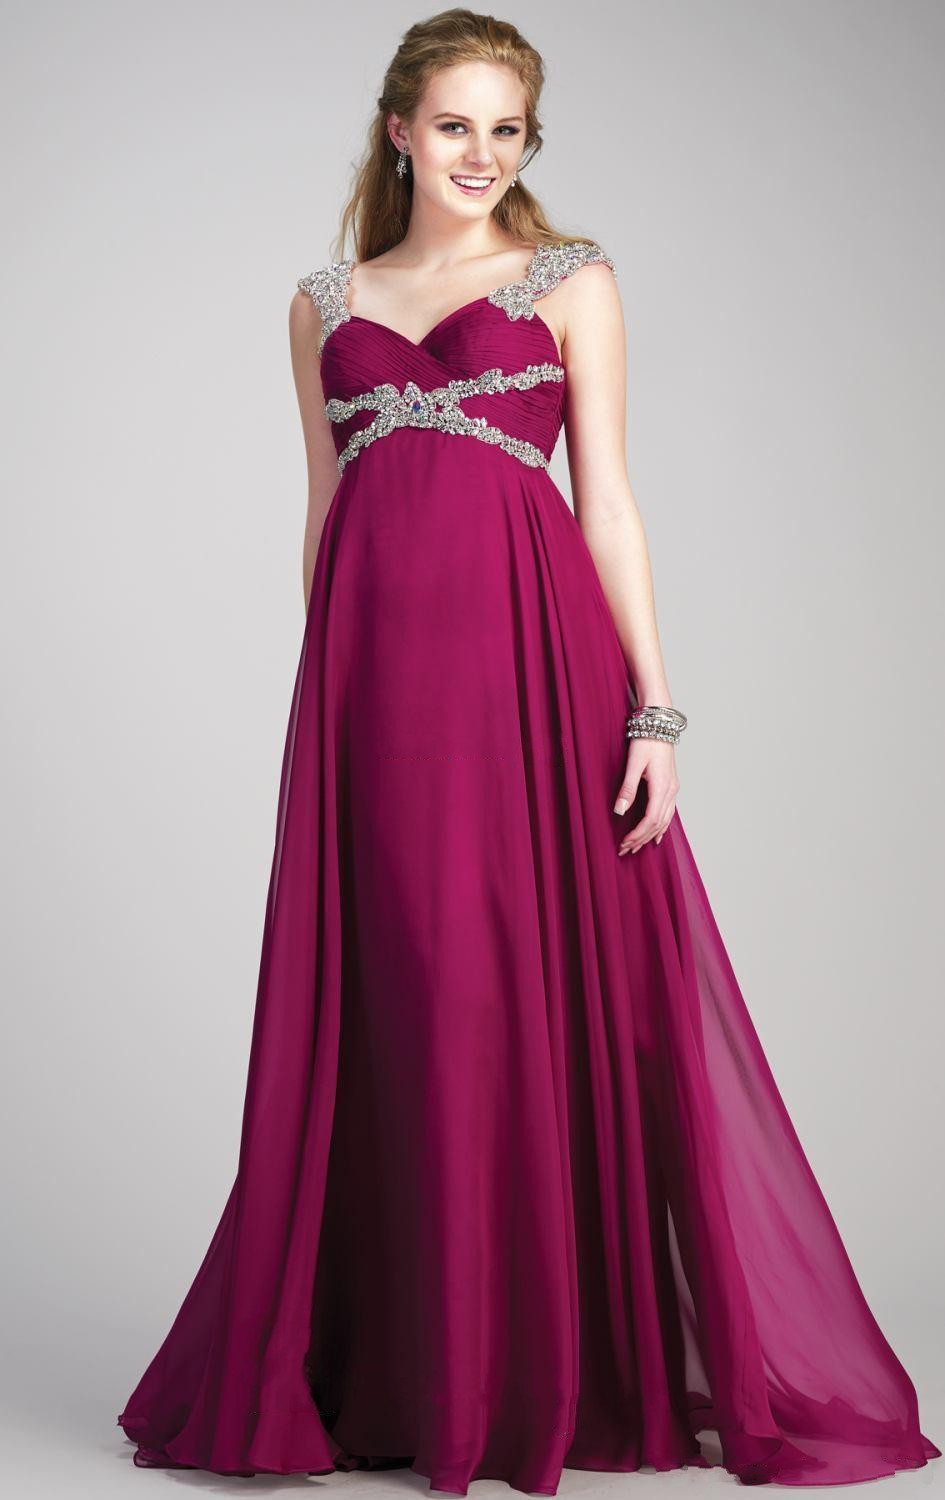 Maternity formal dresses uk gallery dresses design ideas maternity formal dresses cheap images braidsmaid dress cocktail online get cheap maternity prom gown aliexpress alibaba ombrellifo Gallery